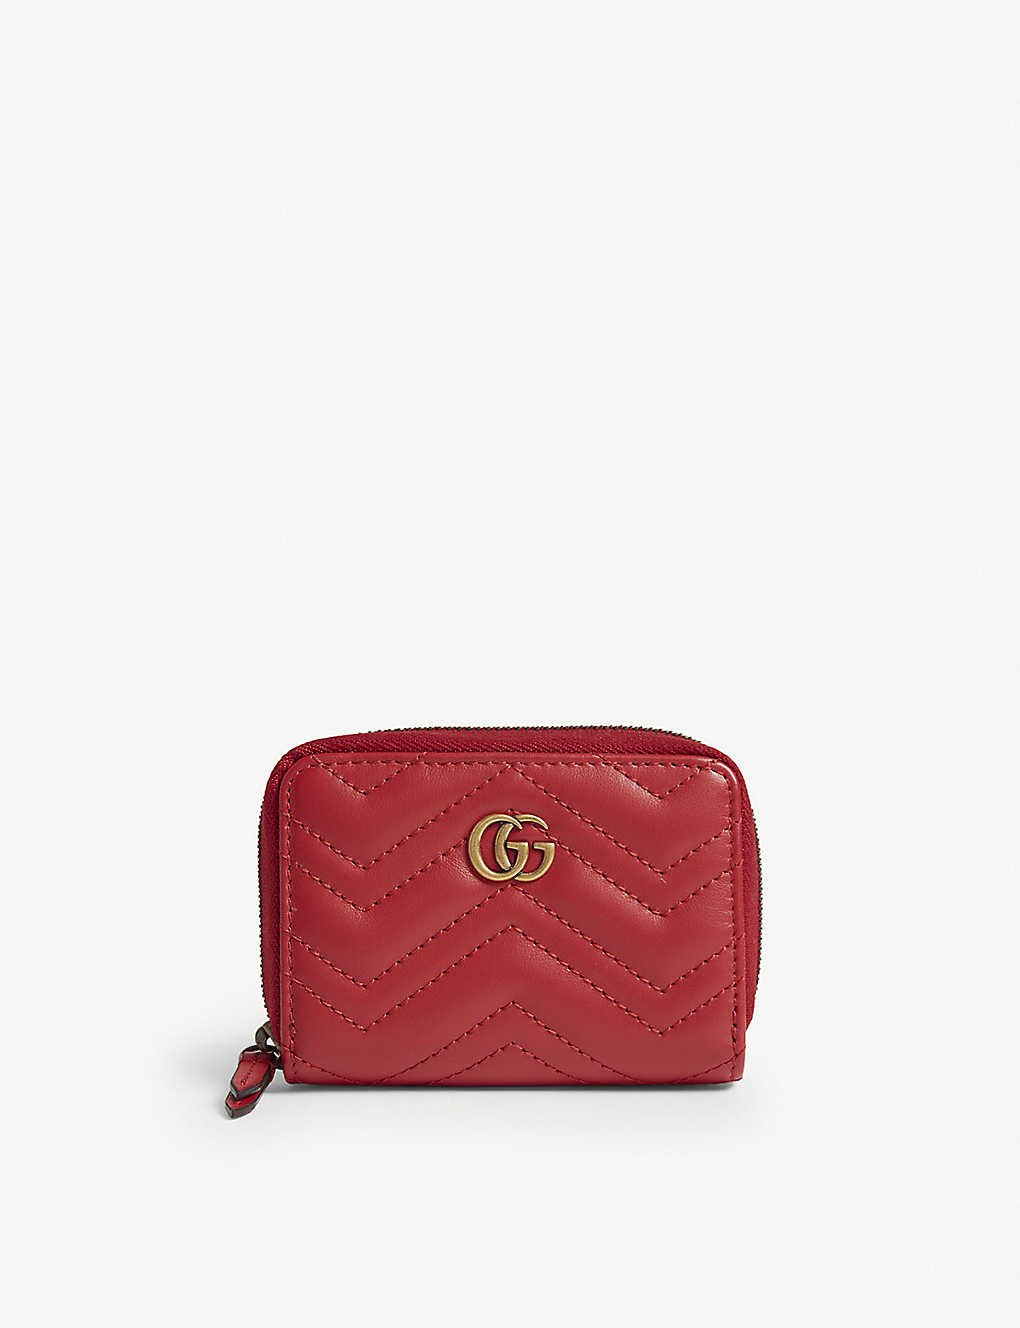 1fb56f229a438f GUCCI - Marmont zip around wallet | Selfridges.comm